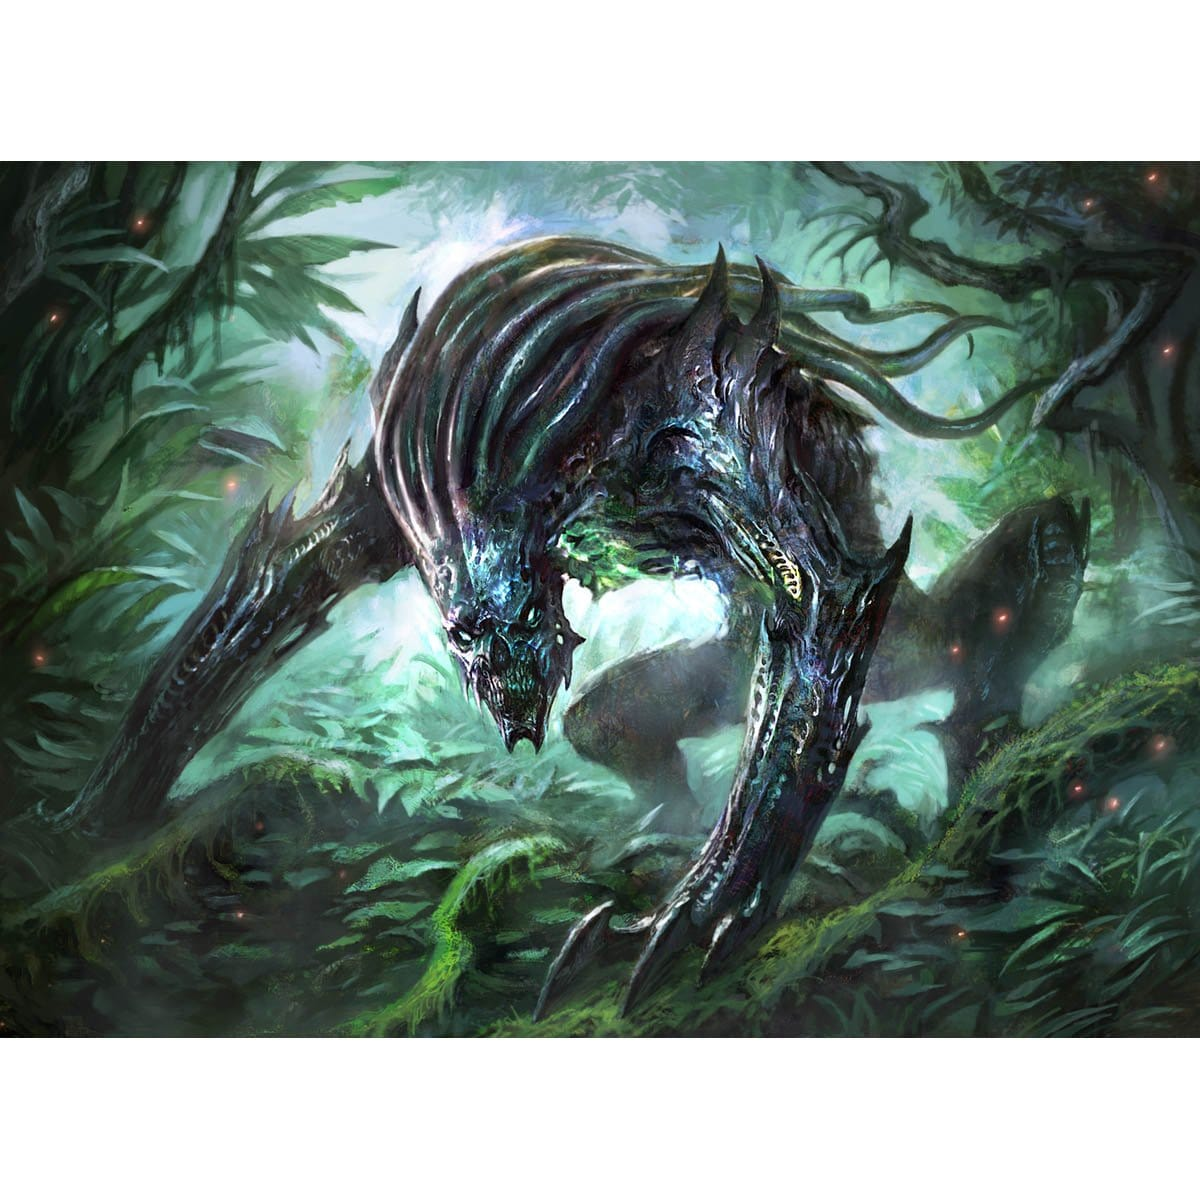 Predatory Sliver Print - Print - Original Magic Art - Accessories for Magic the Gathering and other card games